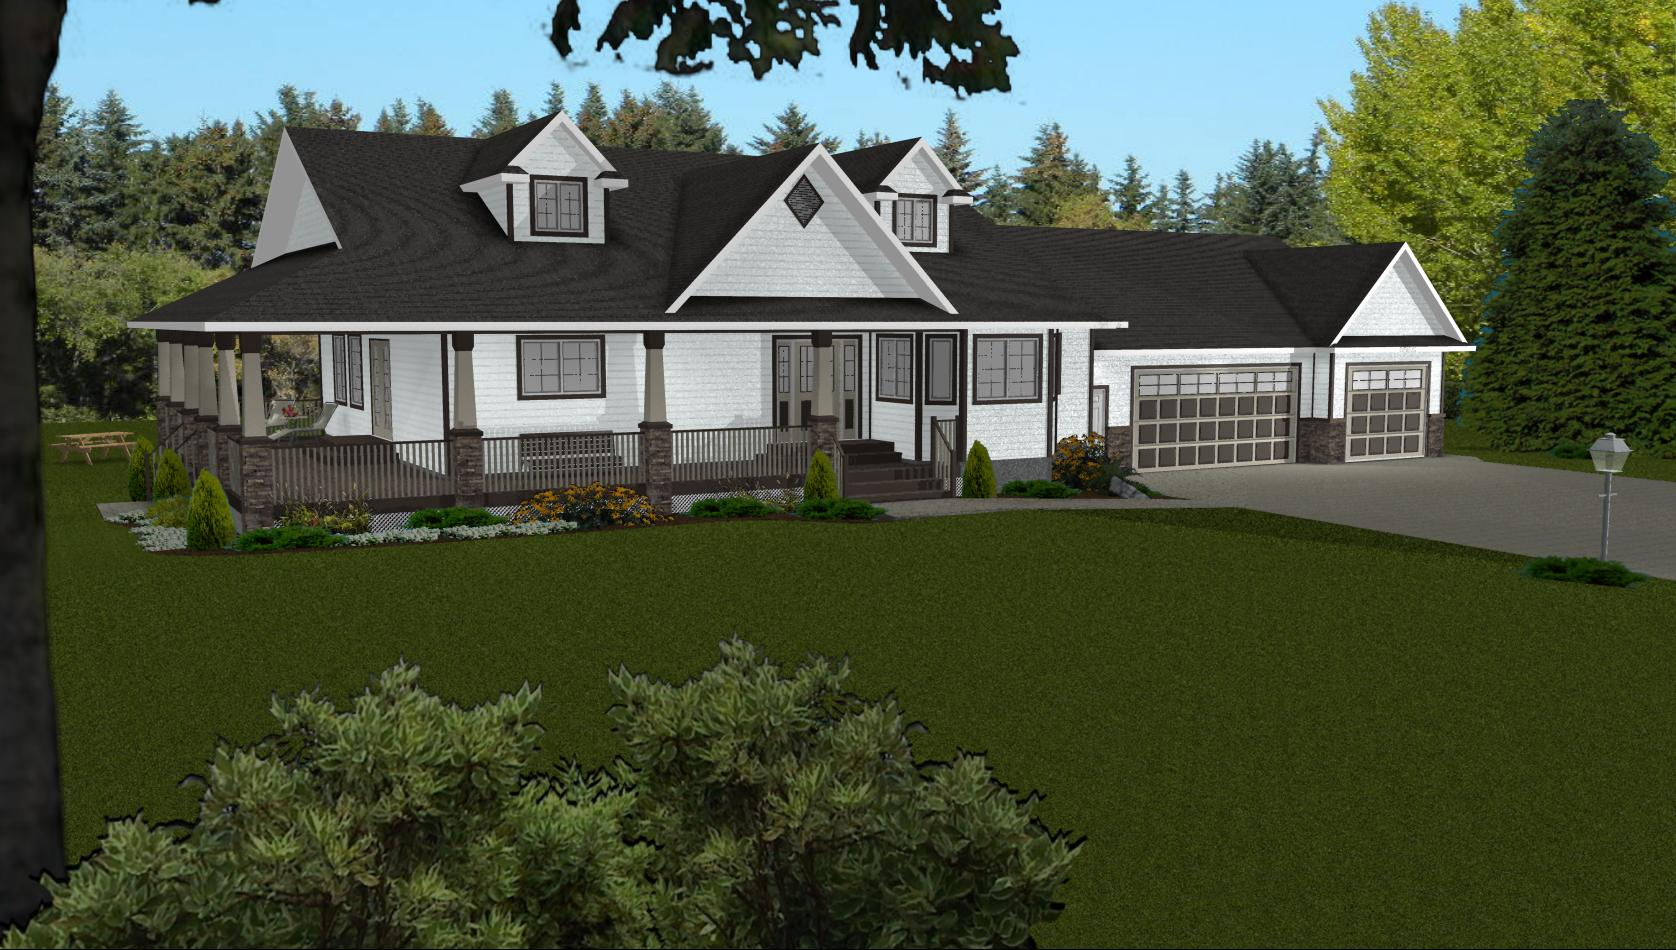 Ranch house plans with walkout basement ranch house plans for House plans walkout basement wrap around porch